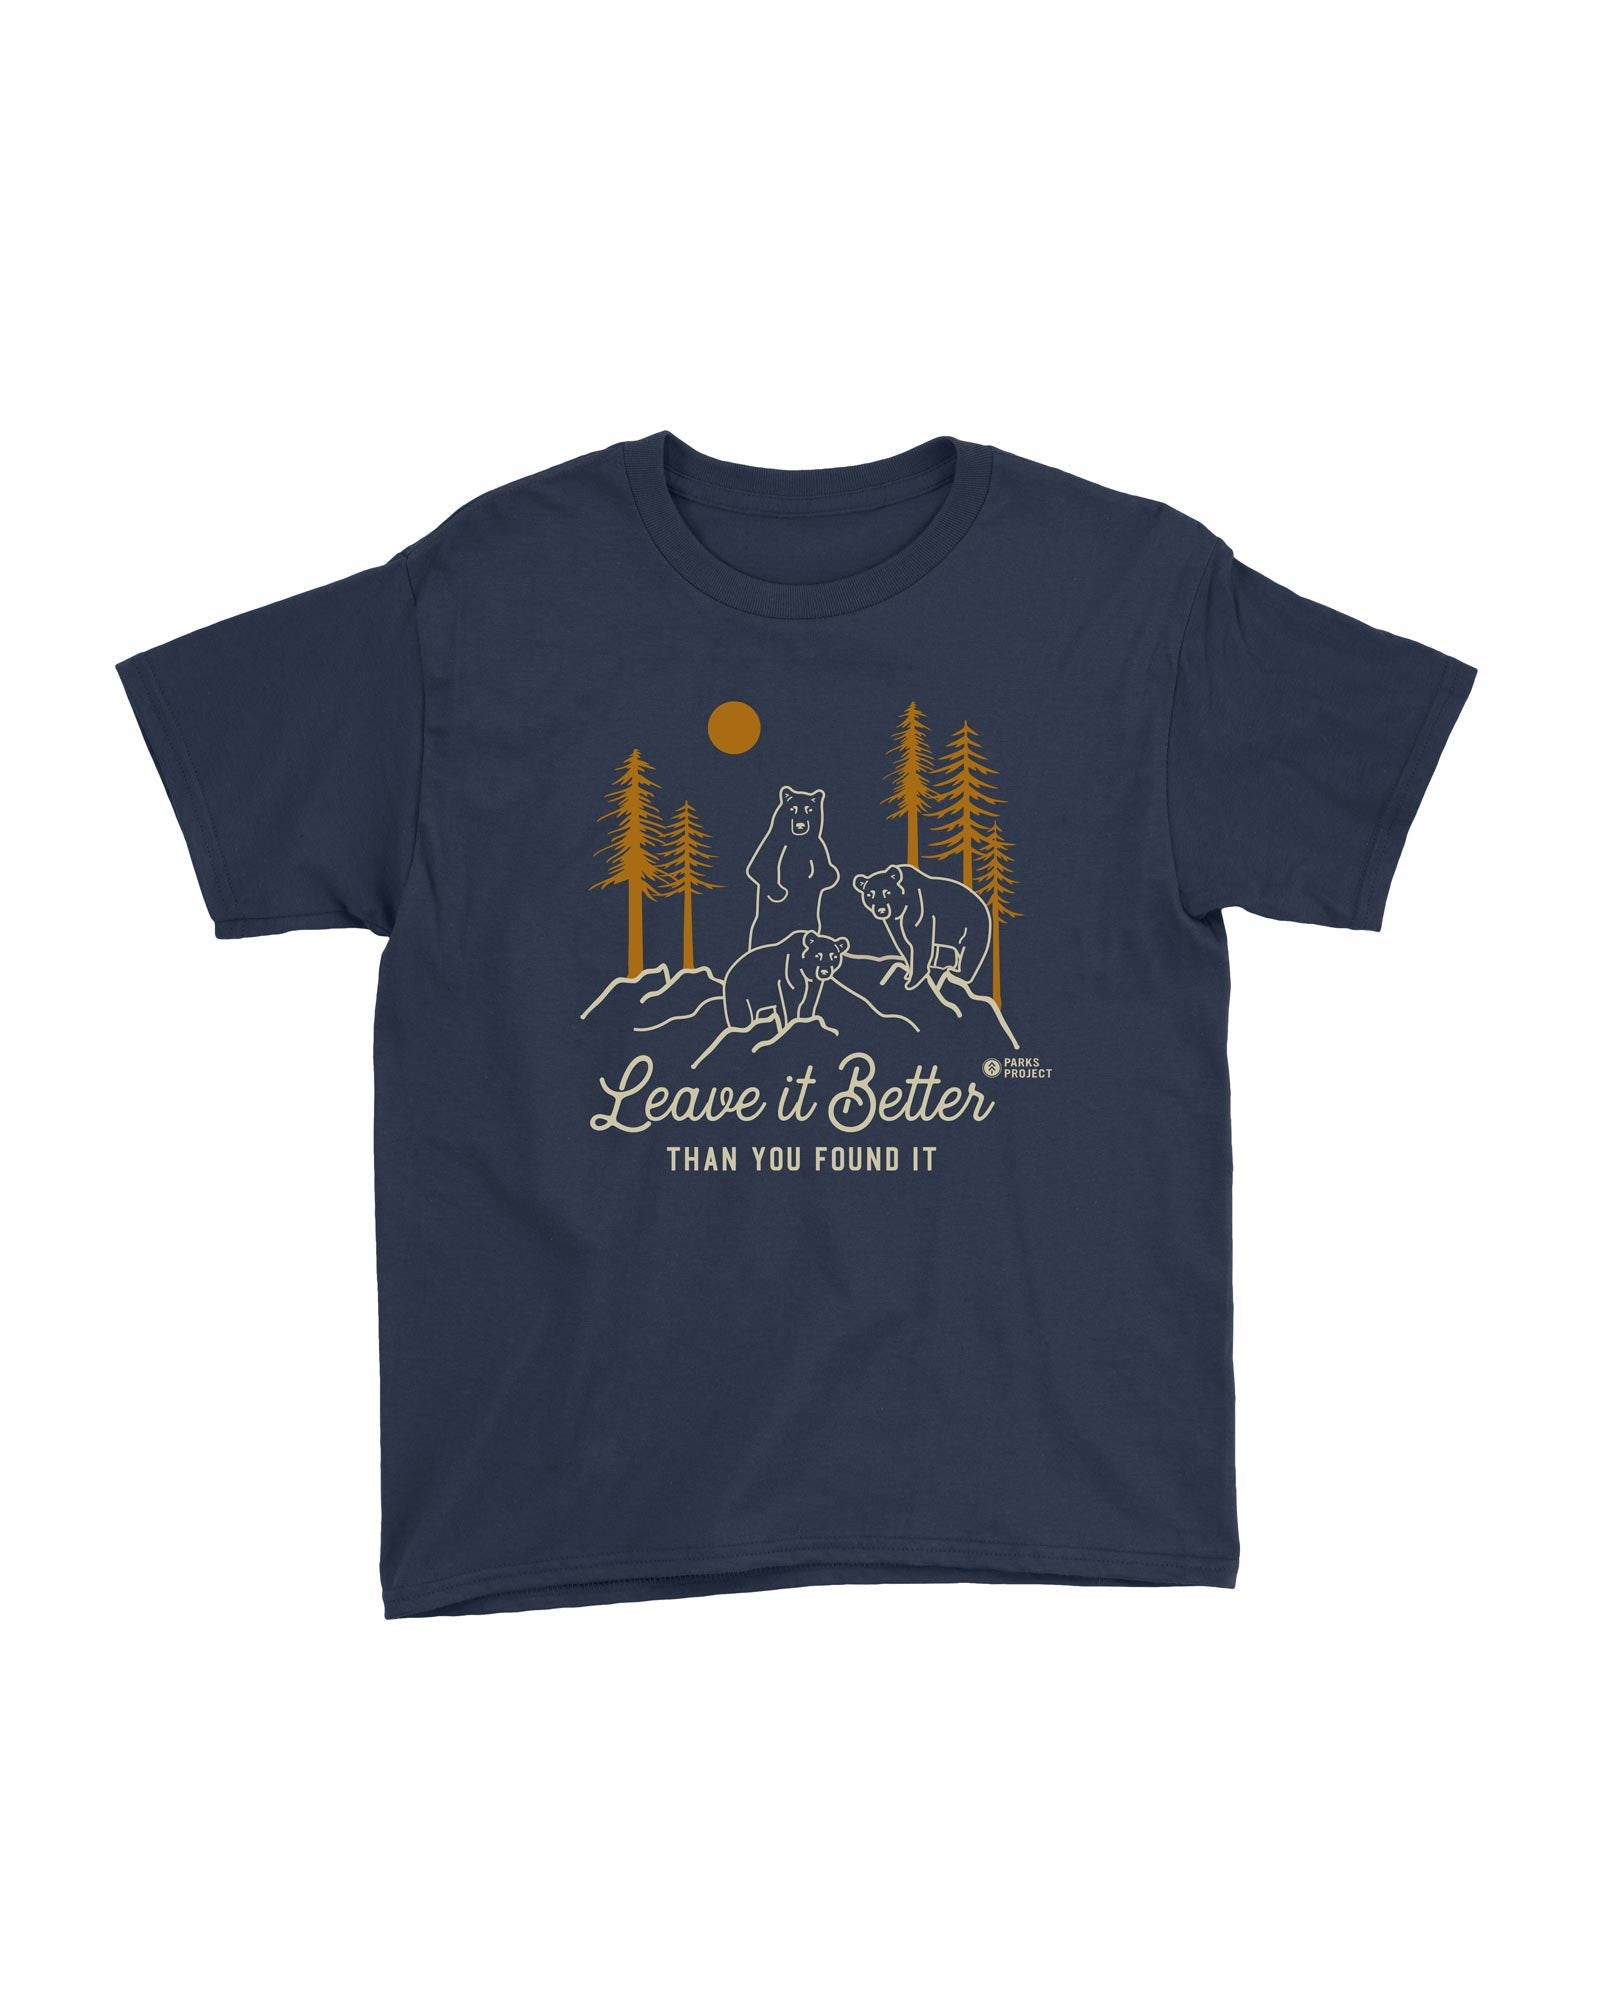 Leave It Better Kids Tee | Parks Project | National Parks Kids Gear